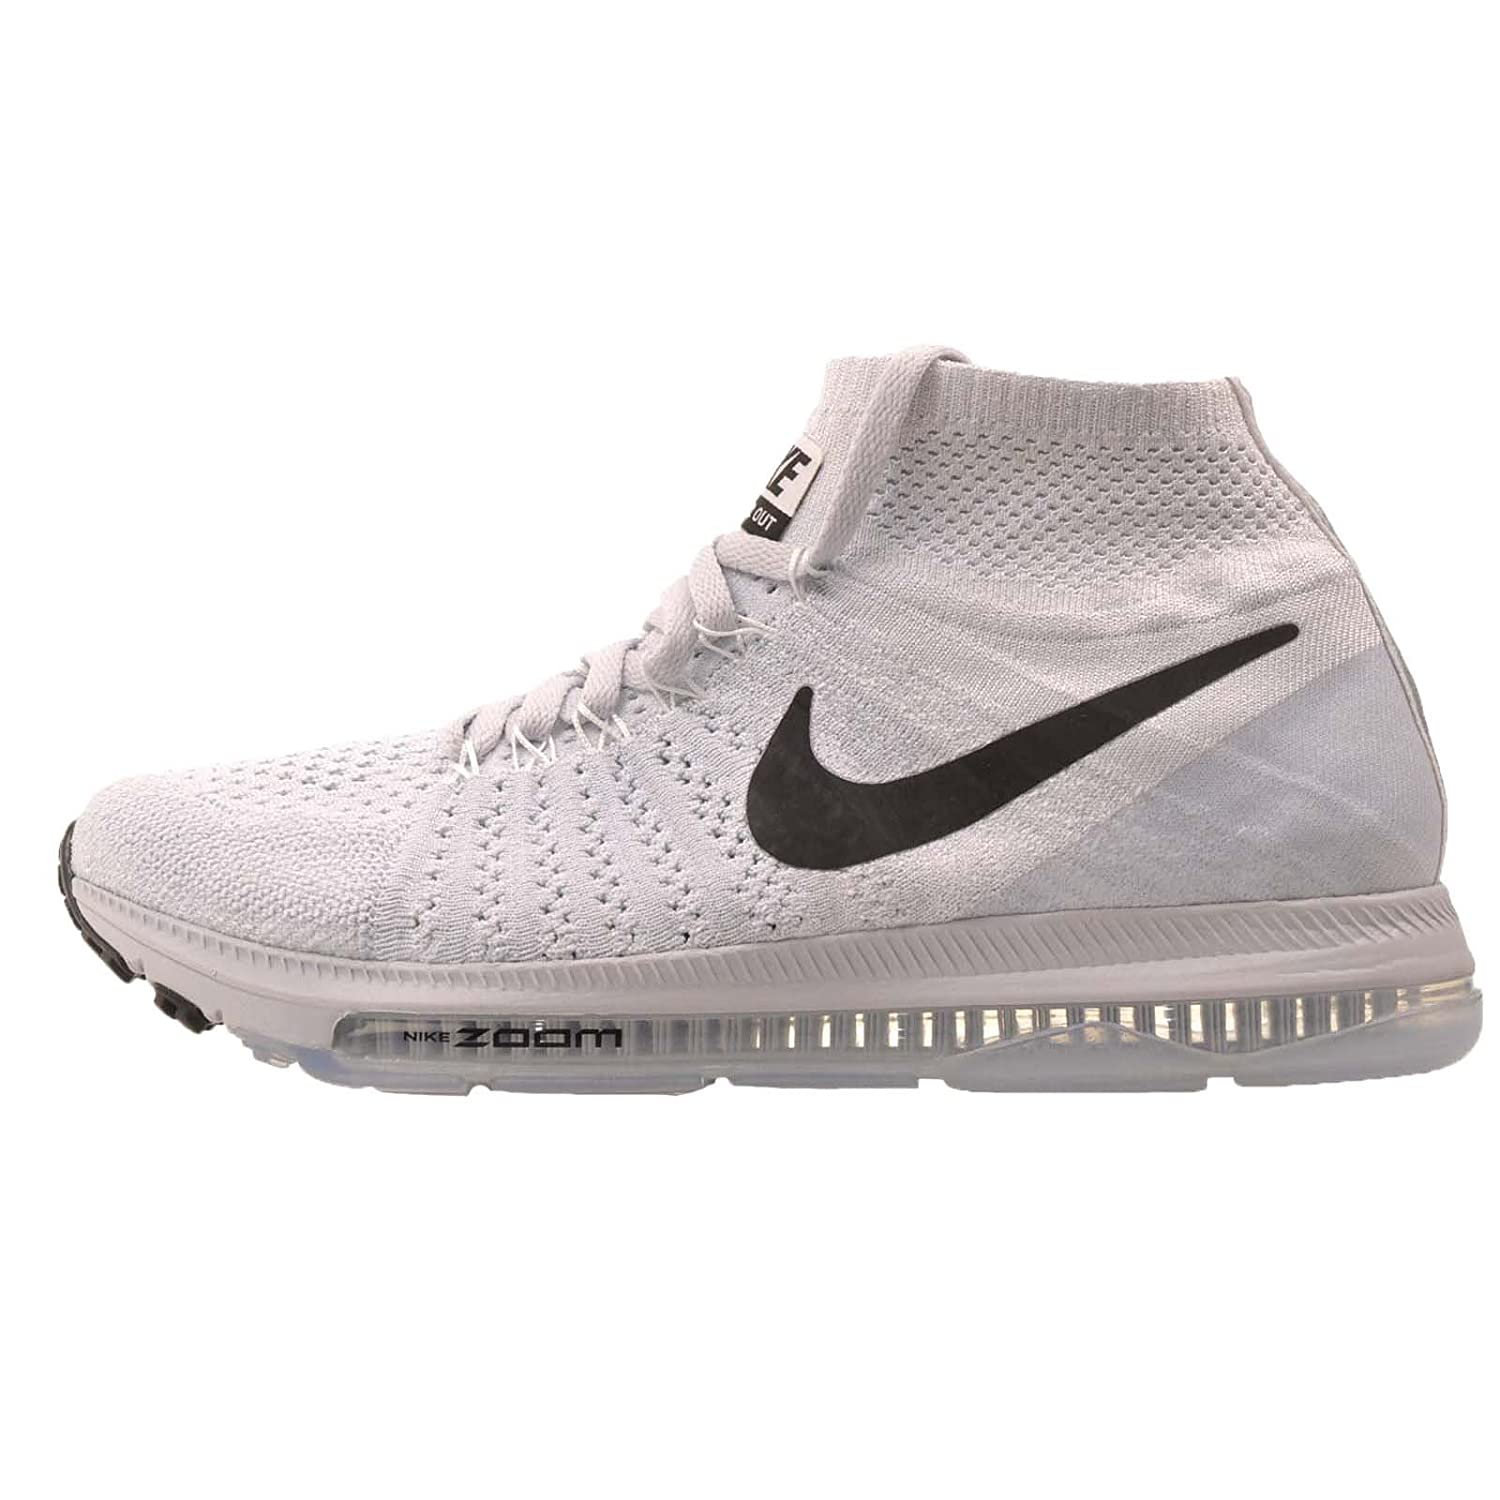 Zapatillas Zoom para correr Nike para Zoom Zapatillas All Out B07BB3N7GG Flyknit 5629f4